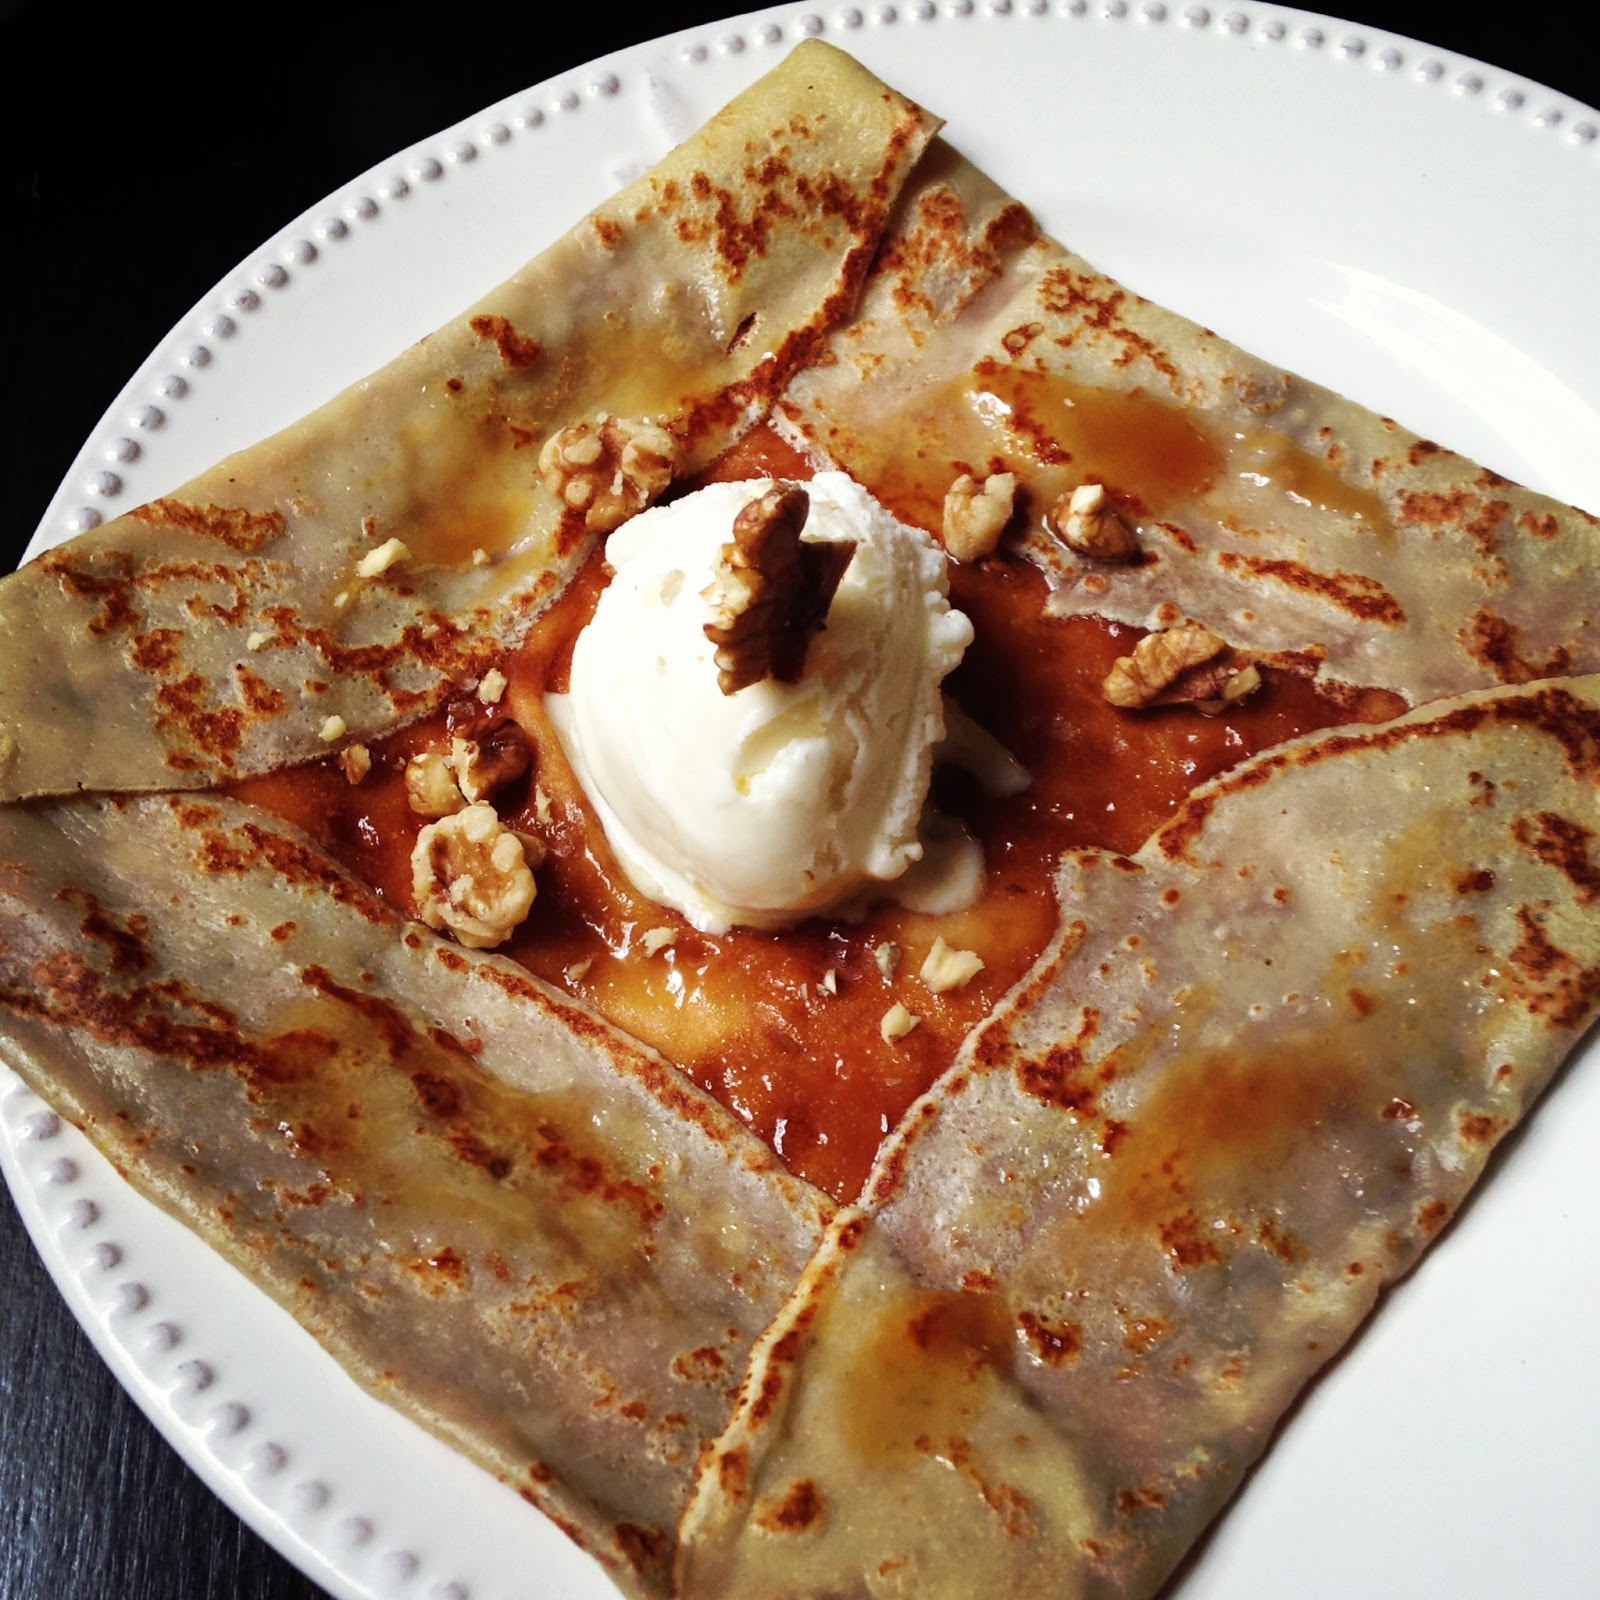 Le Carpe Diem, Adelaide, Food, Crepes, Grenfell Street, Roeun, Galette, Salted Caramel Butter